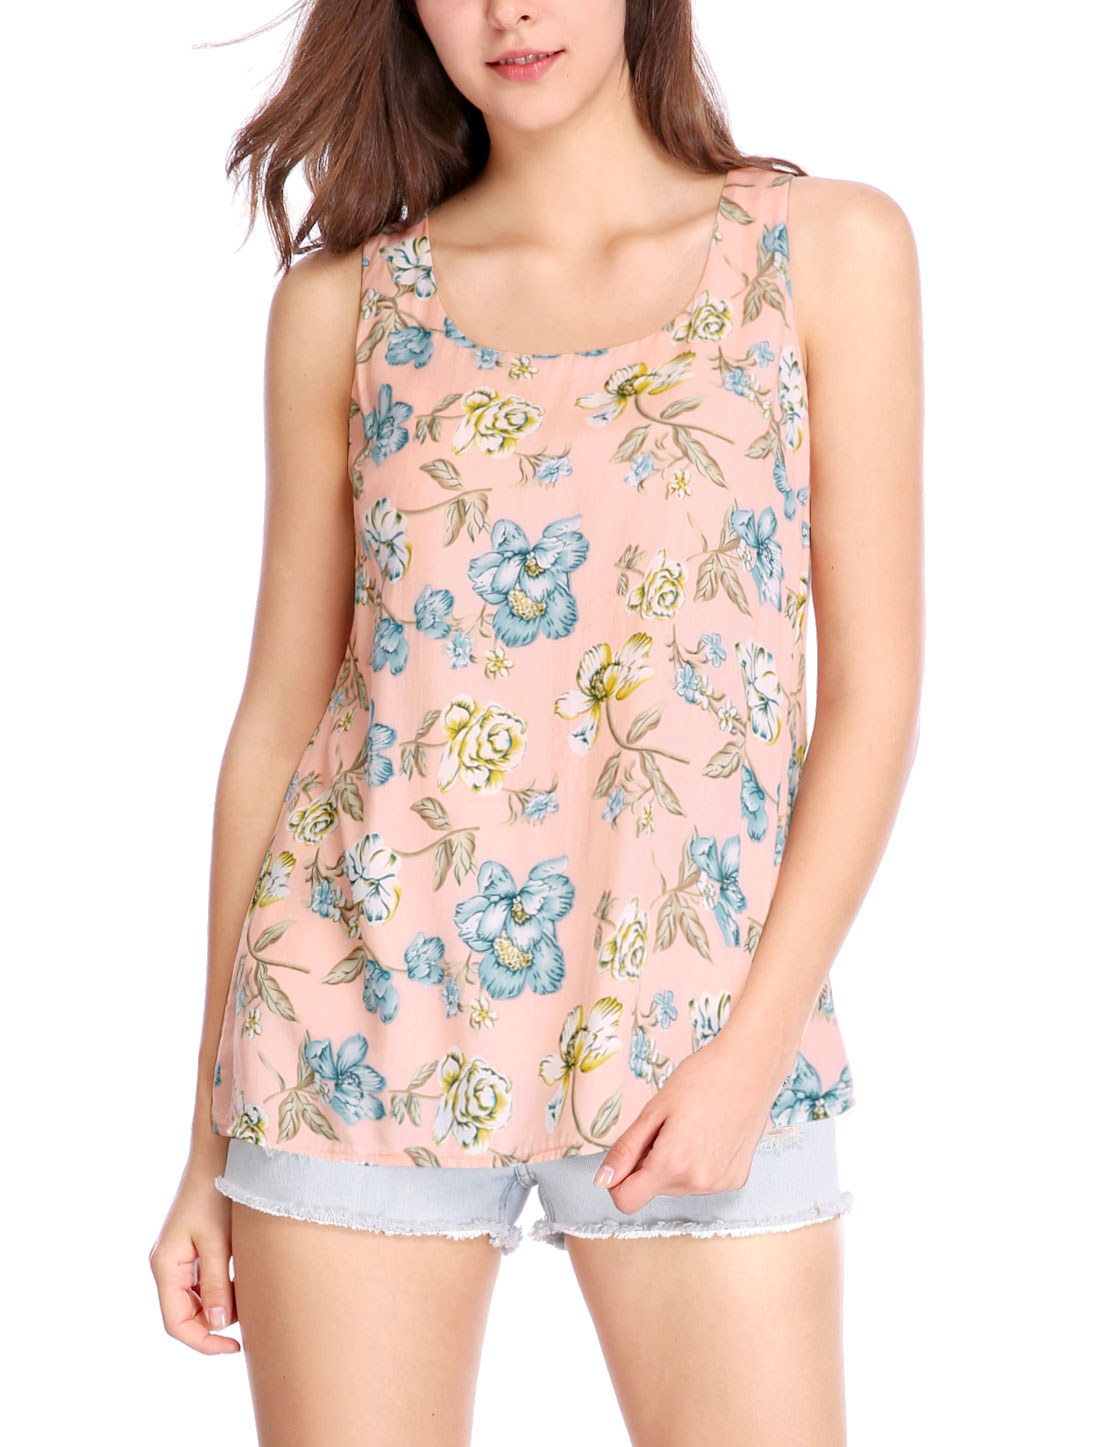 Allegra K Women Floral Prints Sleeveless Scoop Neck Tank Top Pink S